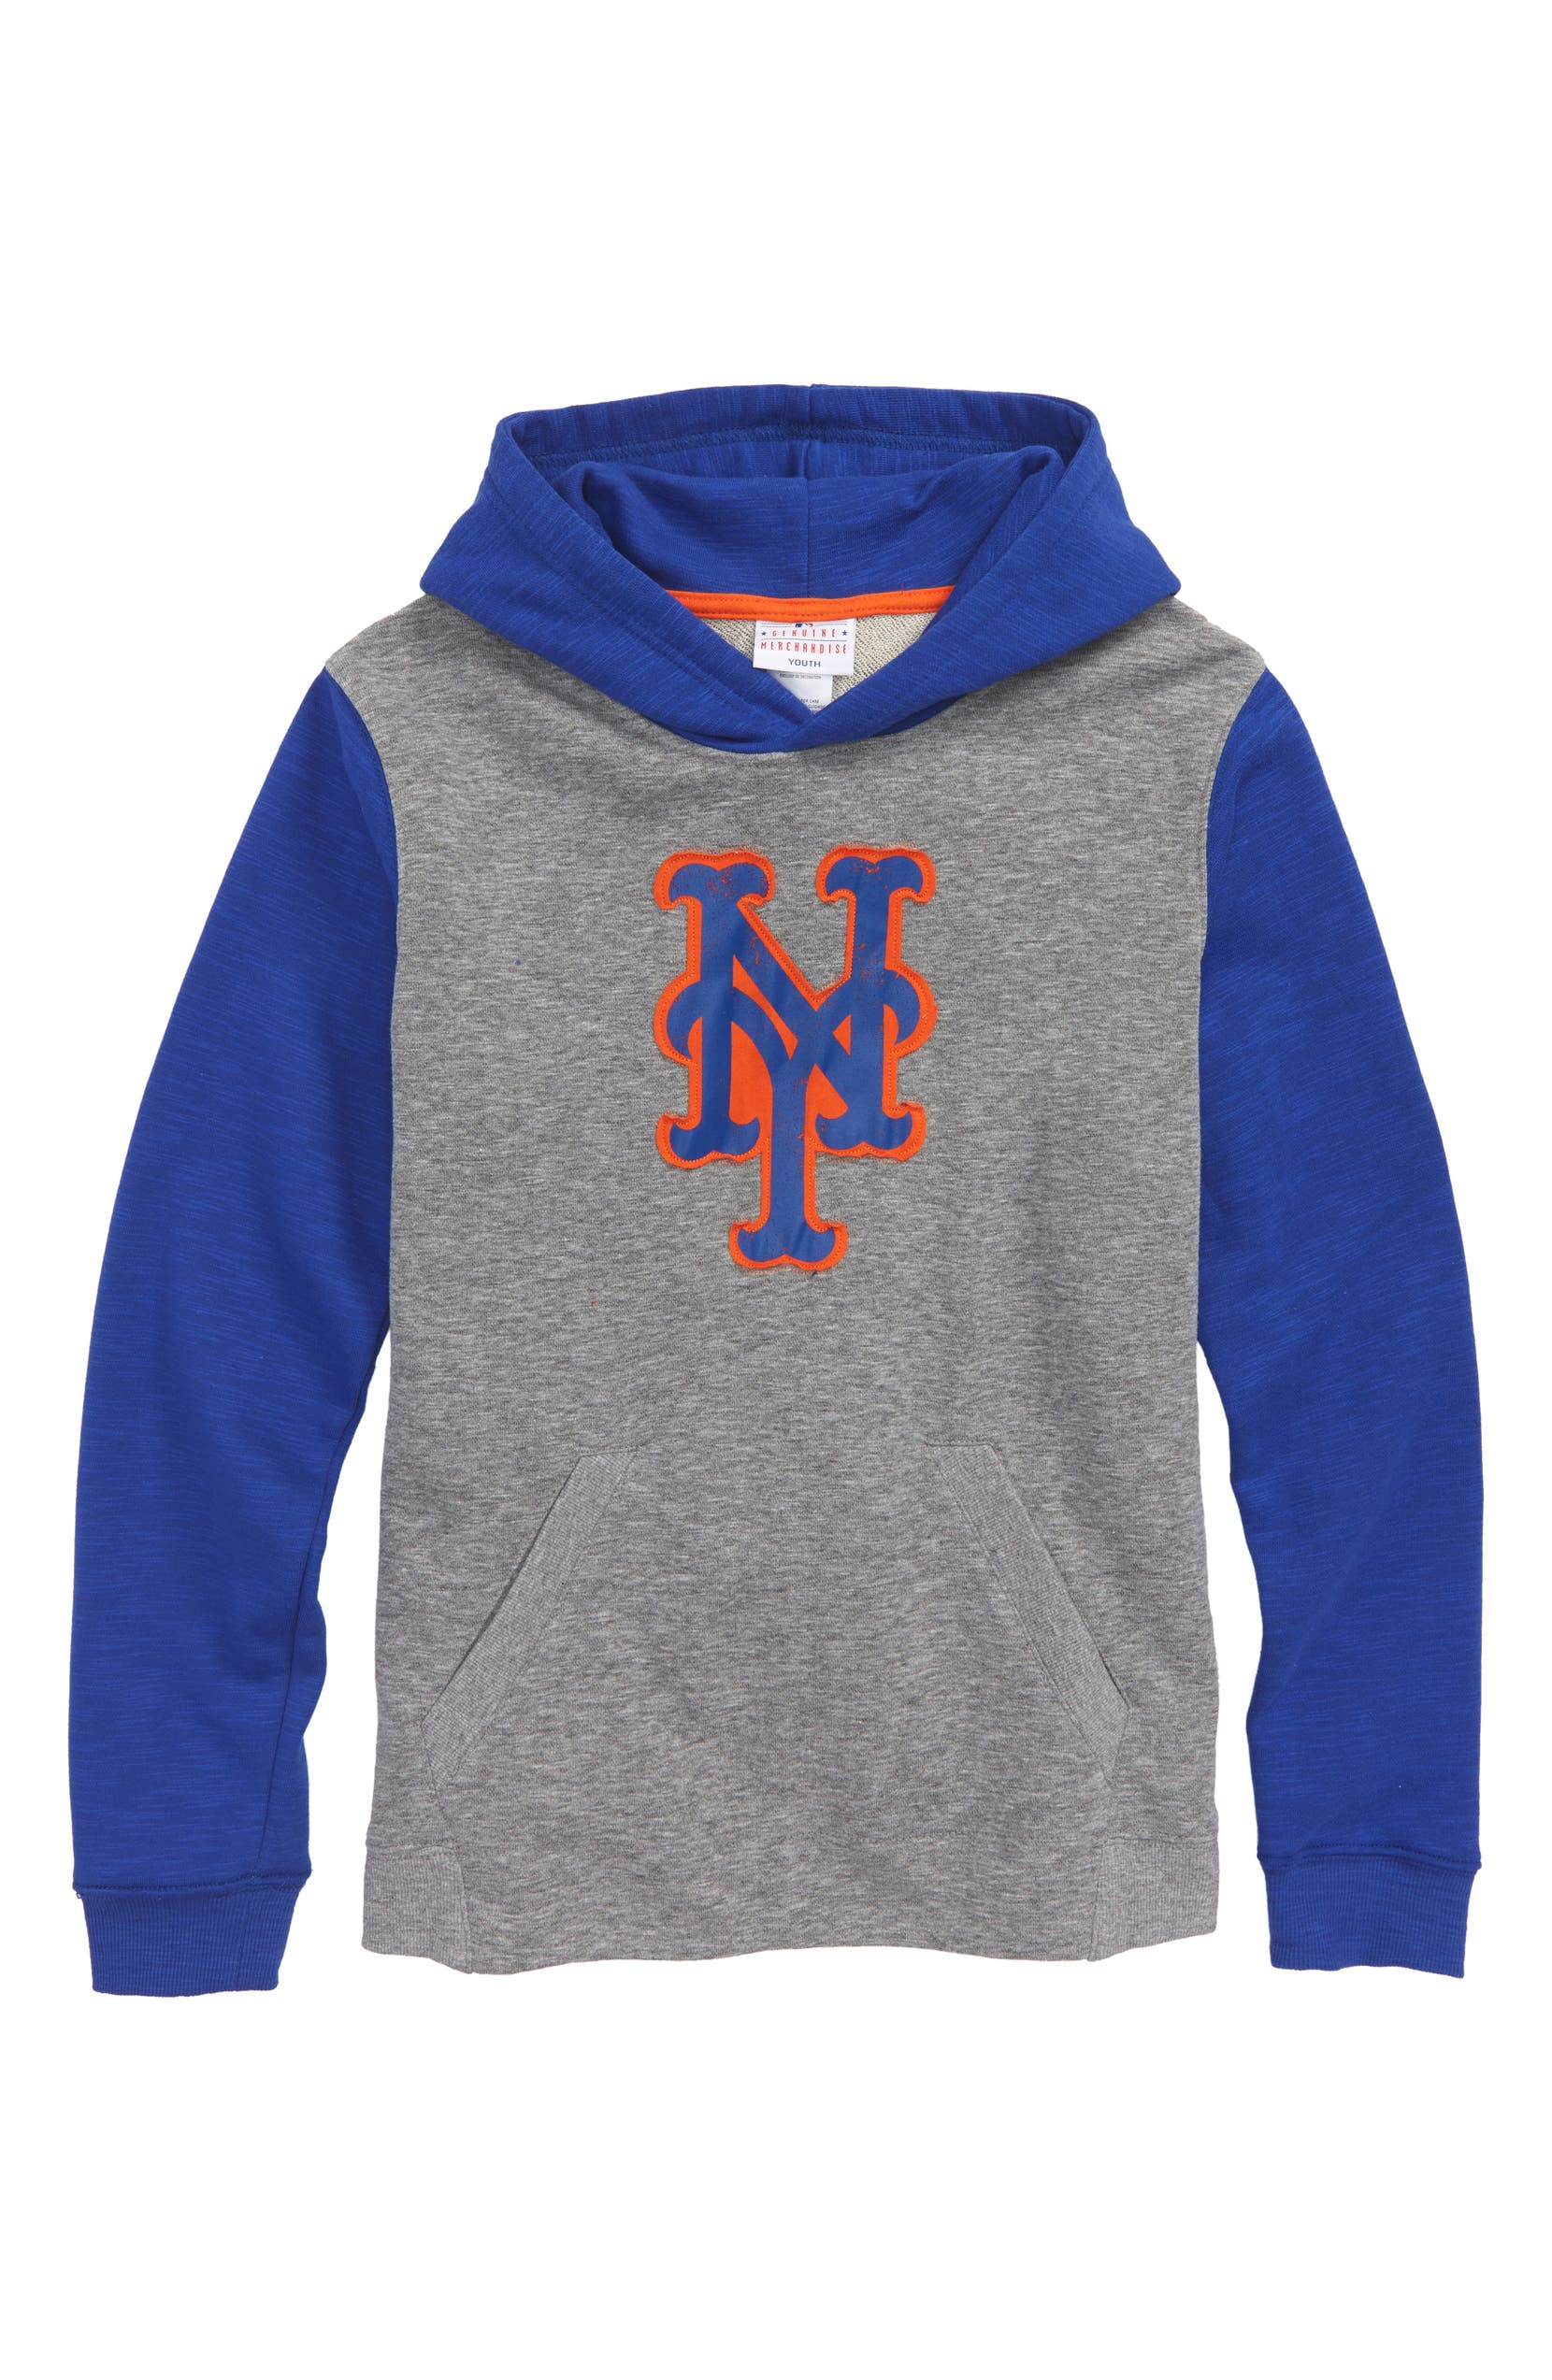 best loved 684a6 e4323 Majestic MLB New Beginnings - New York Mets Pullover Hoodie ...